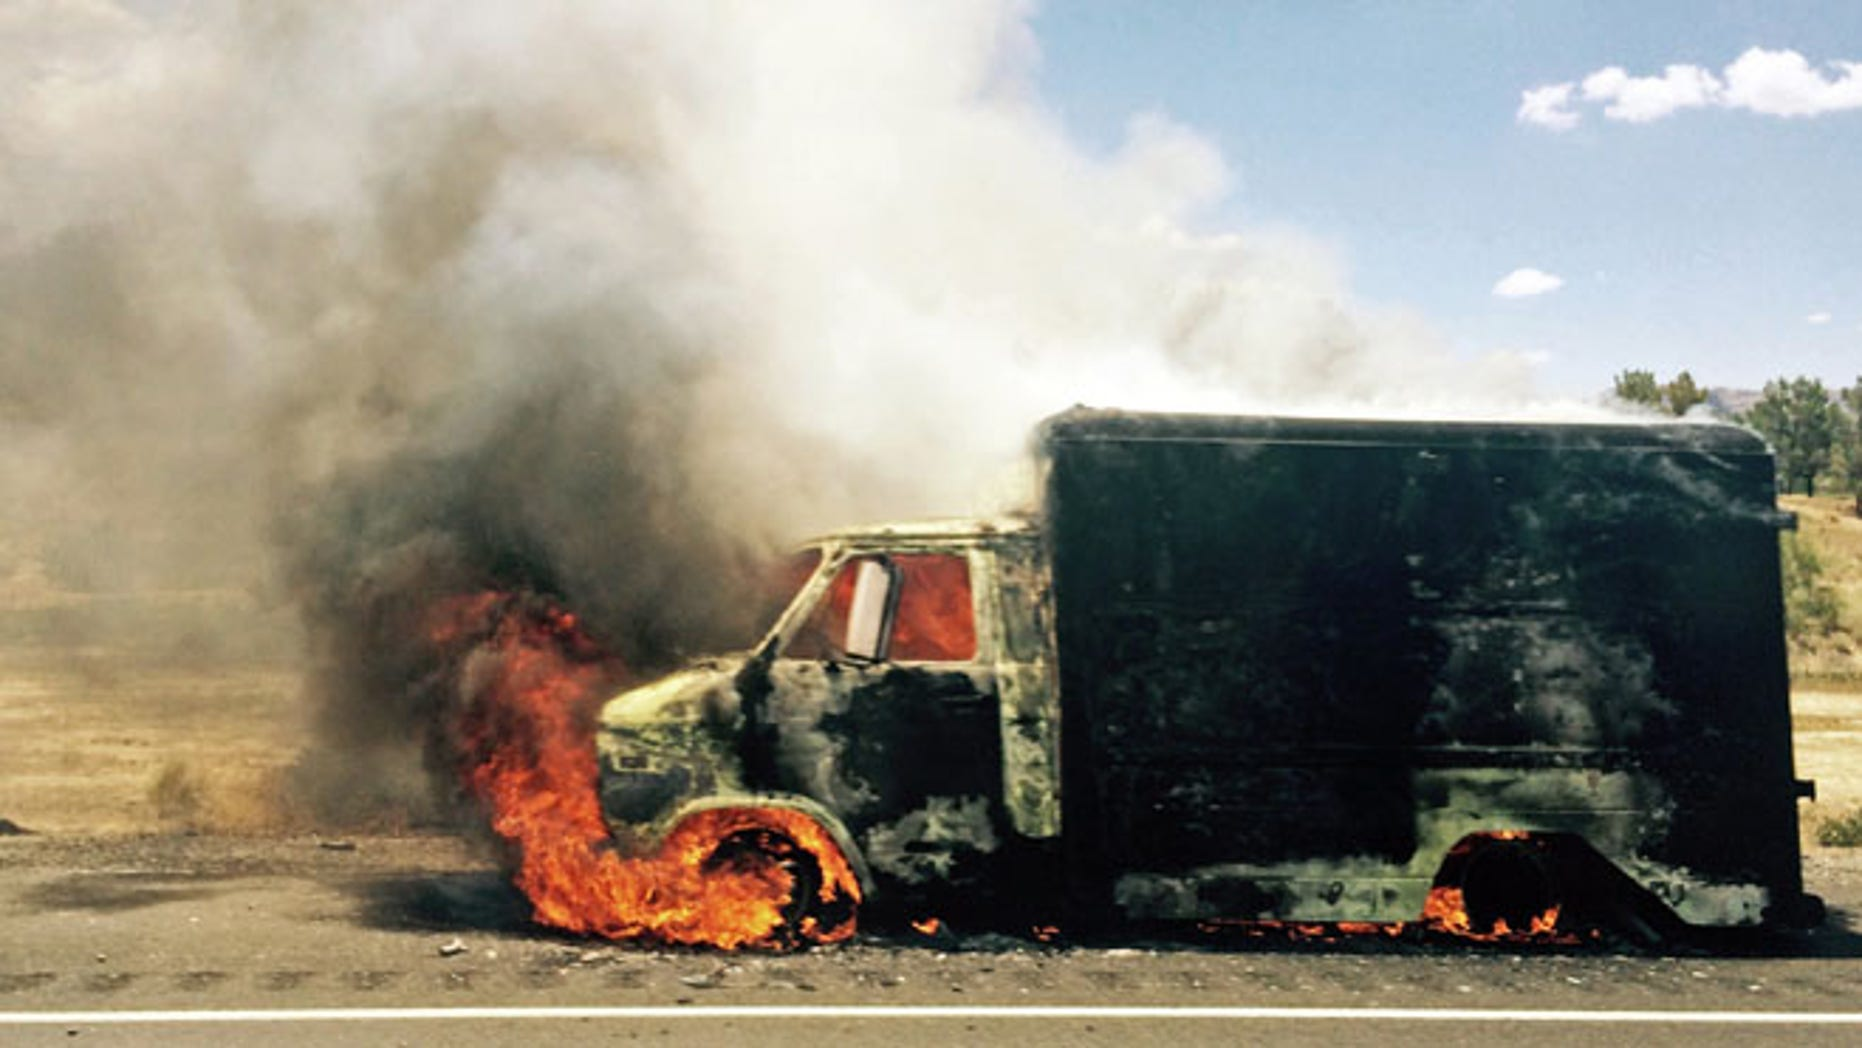 Kuly 2, 2015: In this photo provided by Jay Rutherford, smoke rises from a burning truck packed with fireworks after it exploded on Interstate 15 near Ivanpah, Calif., close to the Nevada state line.